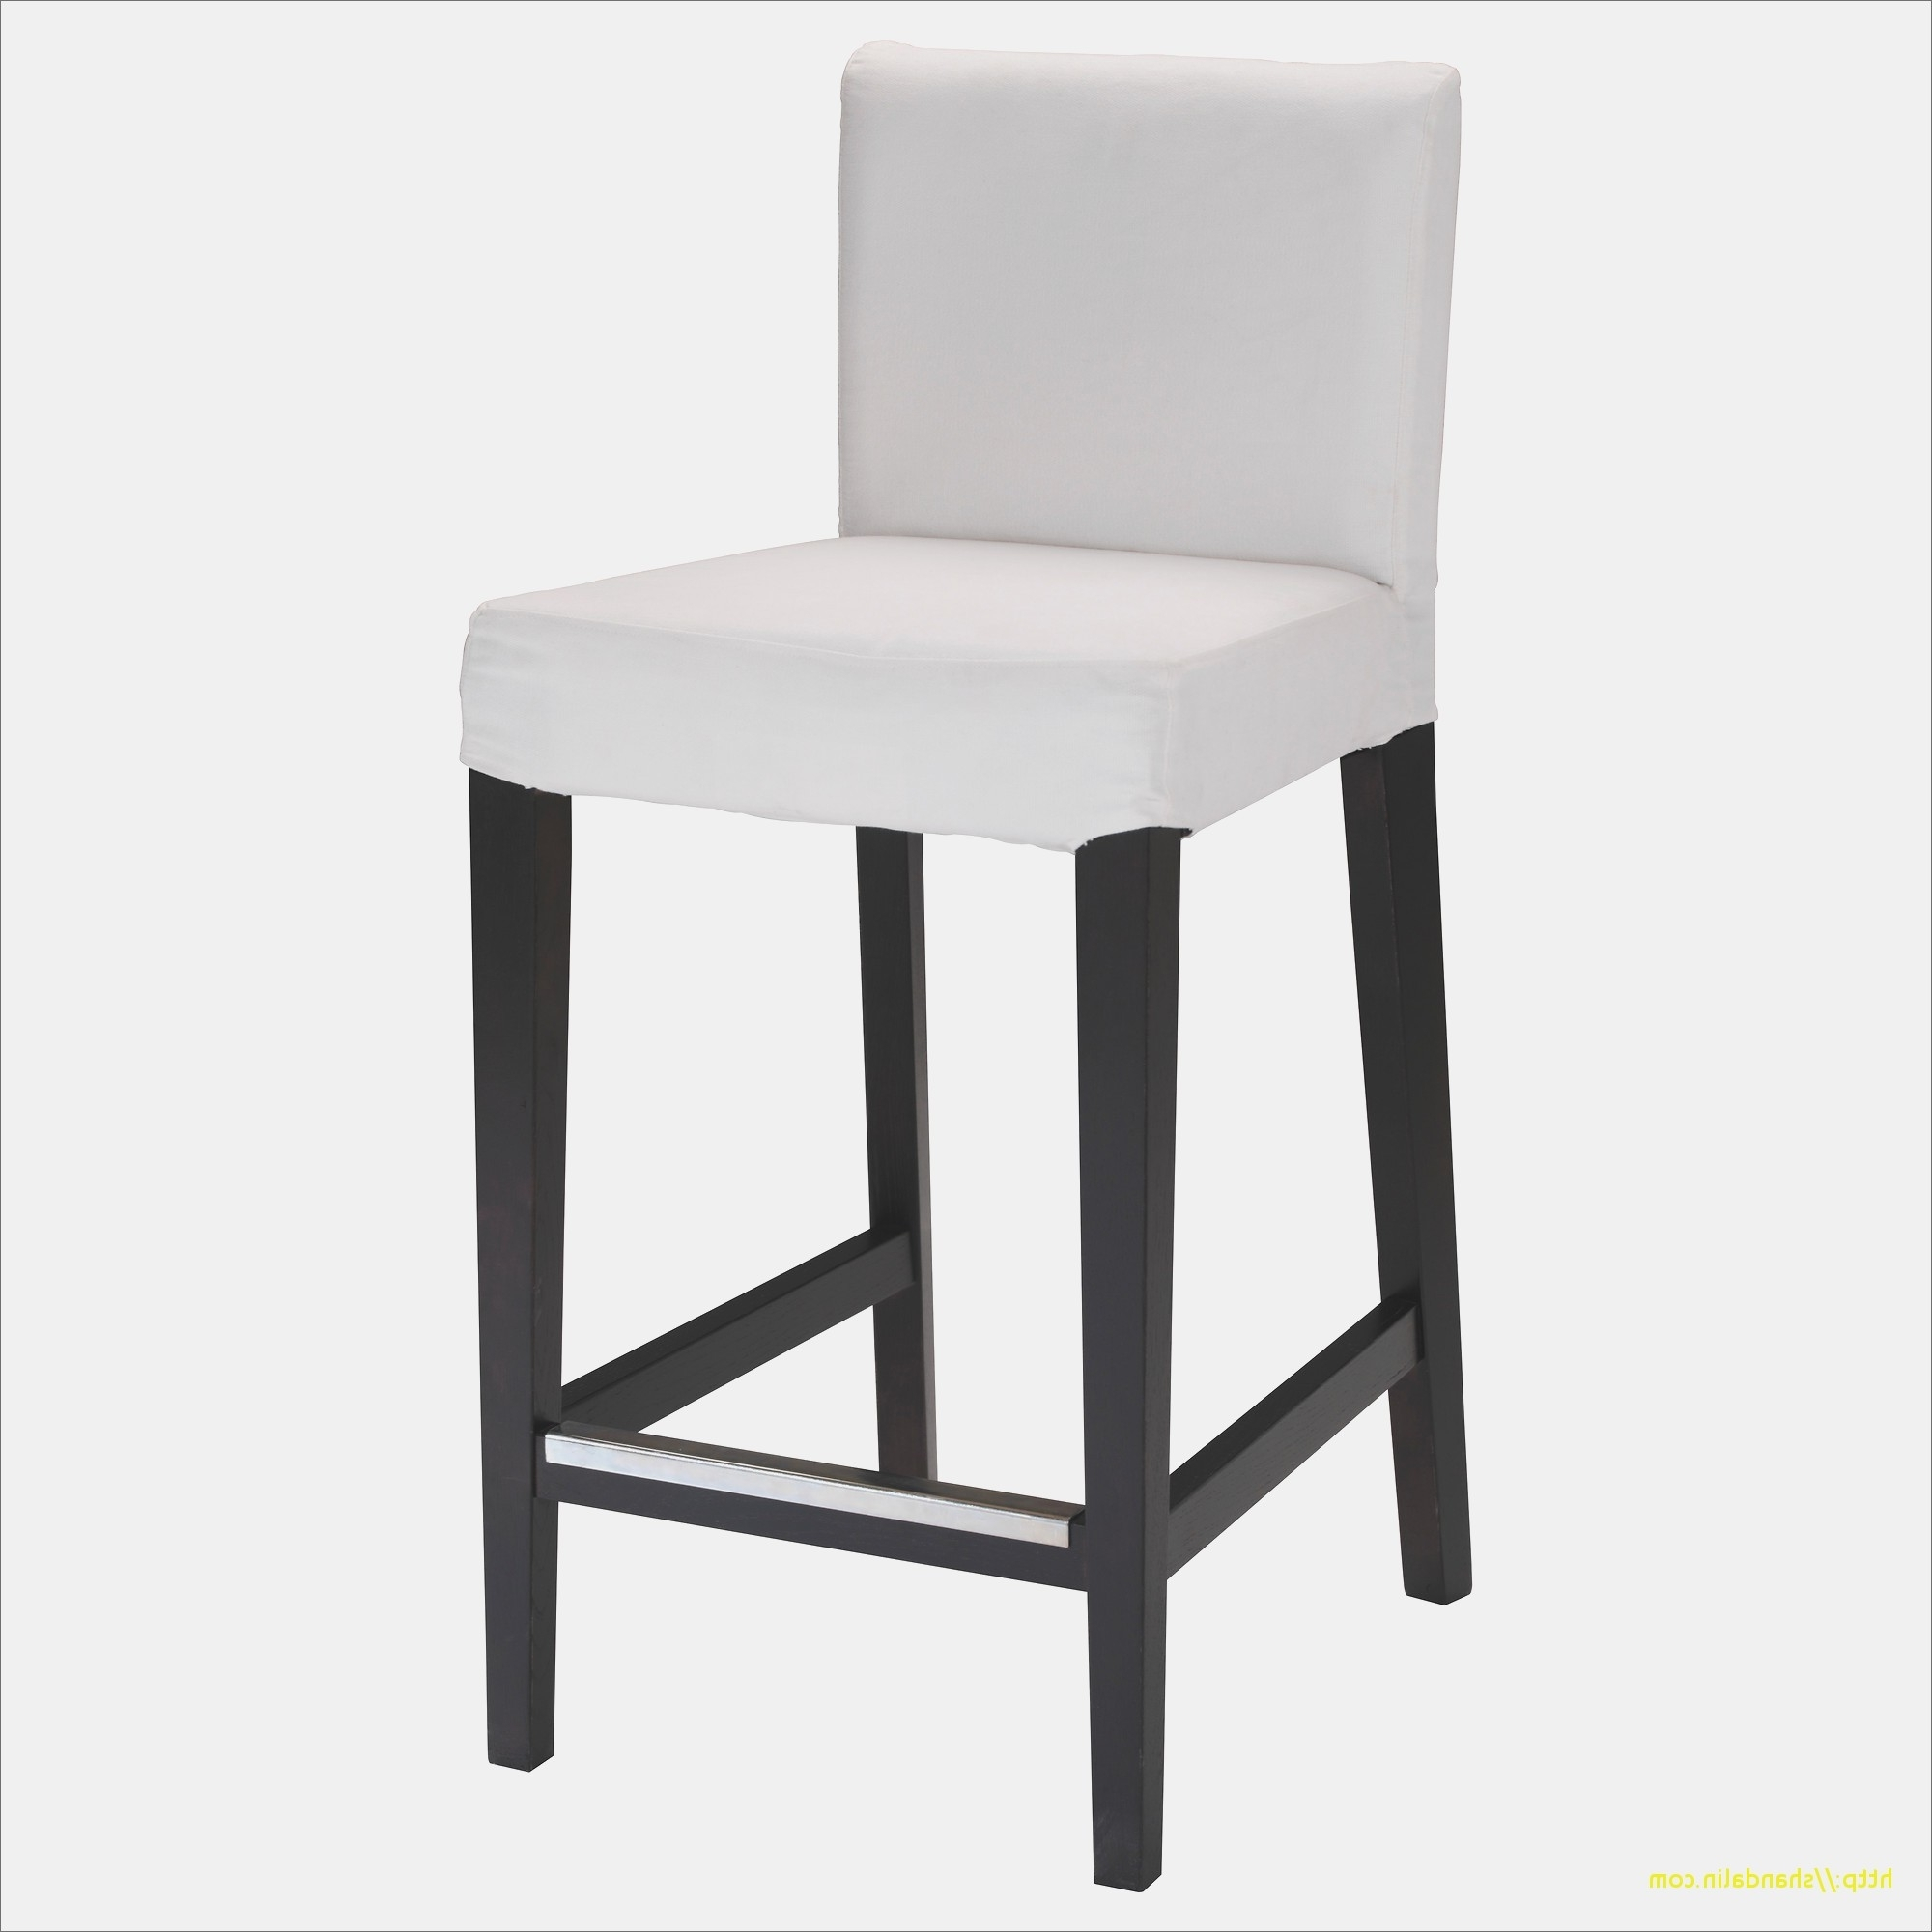 Ikea Chaises With Trendy Chaises De Cuisine Ikea. Gallery Of Beautiful Description Chaises (Gallery 6 of 15)